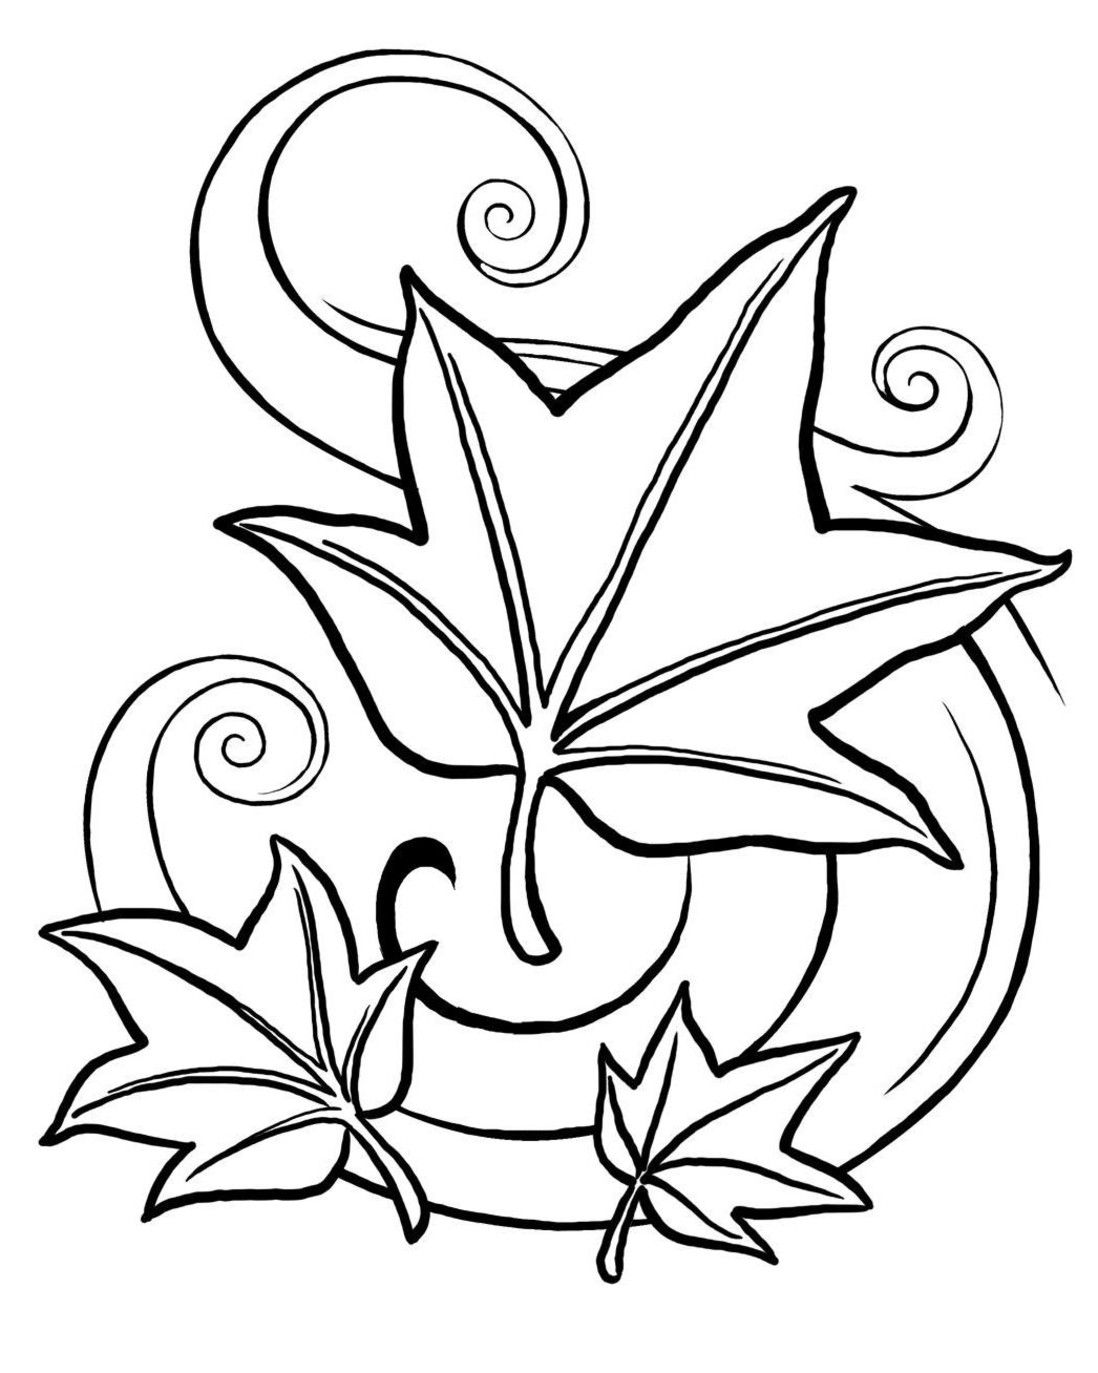 http://coloringtown.com/images/fall-coloring-pages/fall-coloring ...